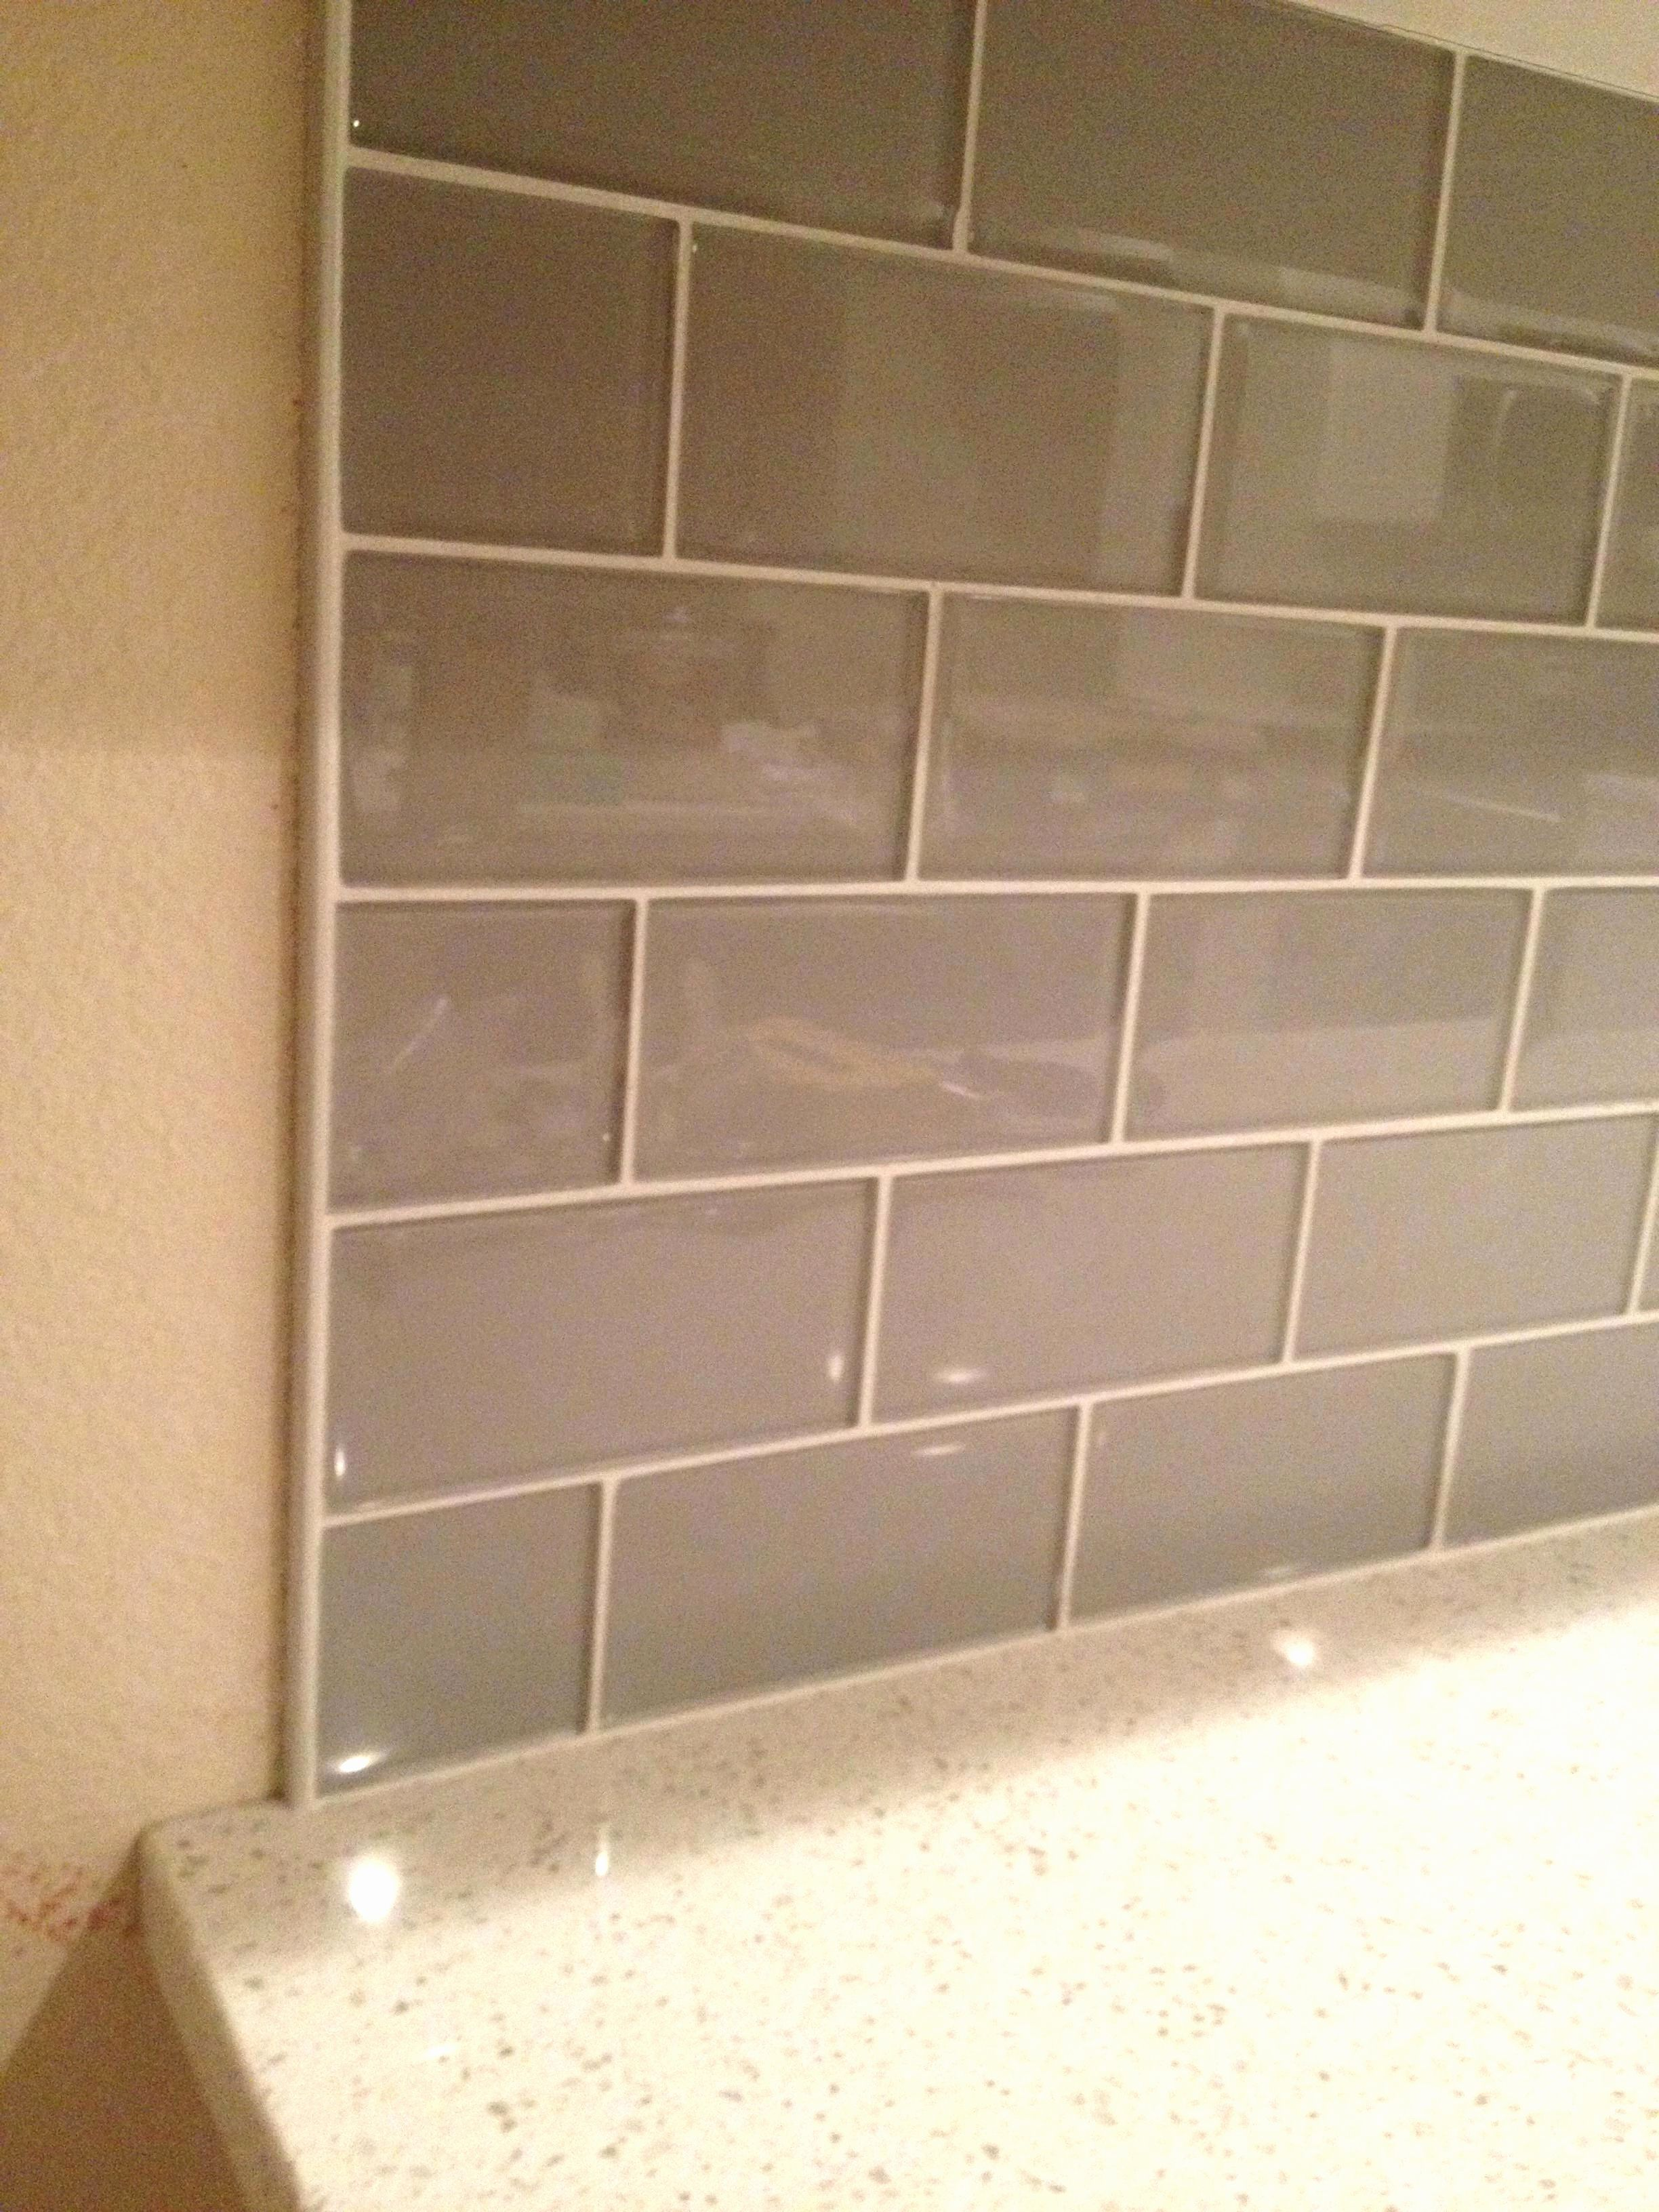 Kitchen Backsplash Trim Ideas Inspirational Backsplash Tile Trim Unique Backsplash Kitchen Backsplash Trim - Kitchen Ideas - Kitchen Ideas & Kitchen Backsplash Trim Ideas Inspirational Backsplash Tile Trim ...